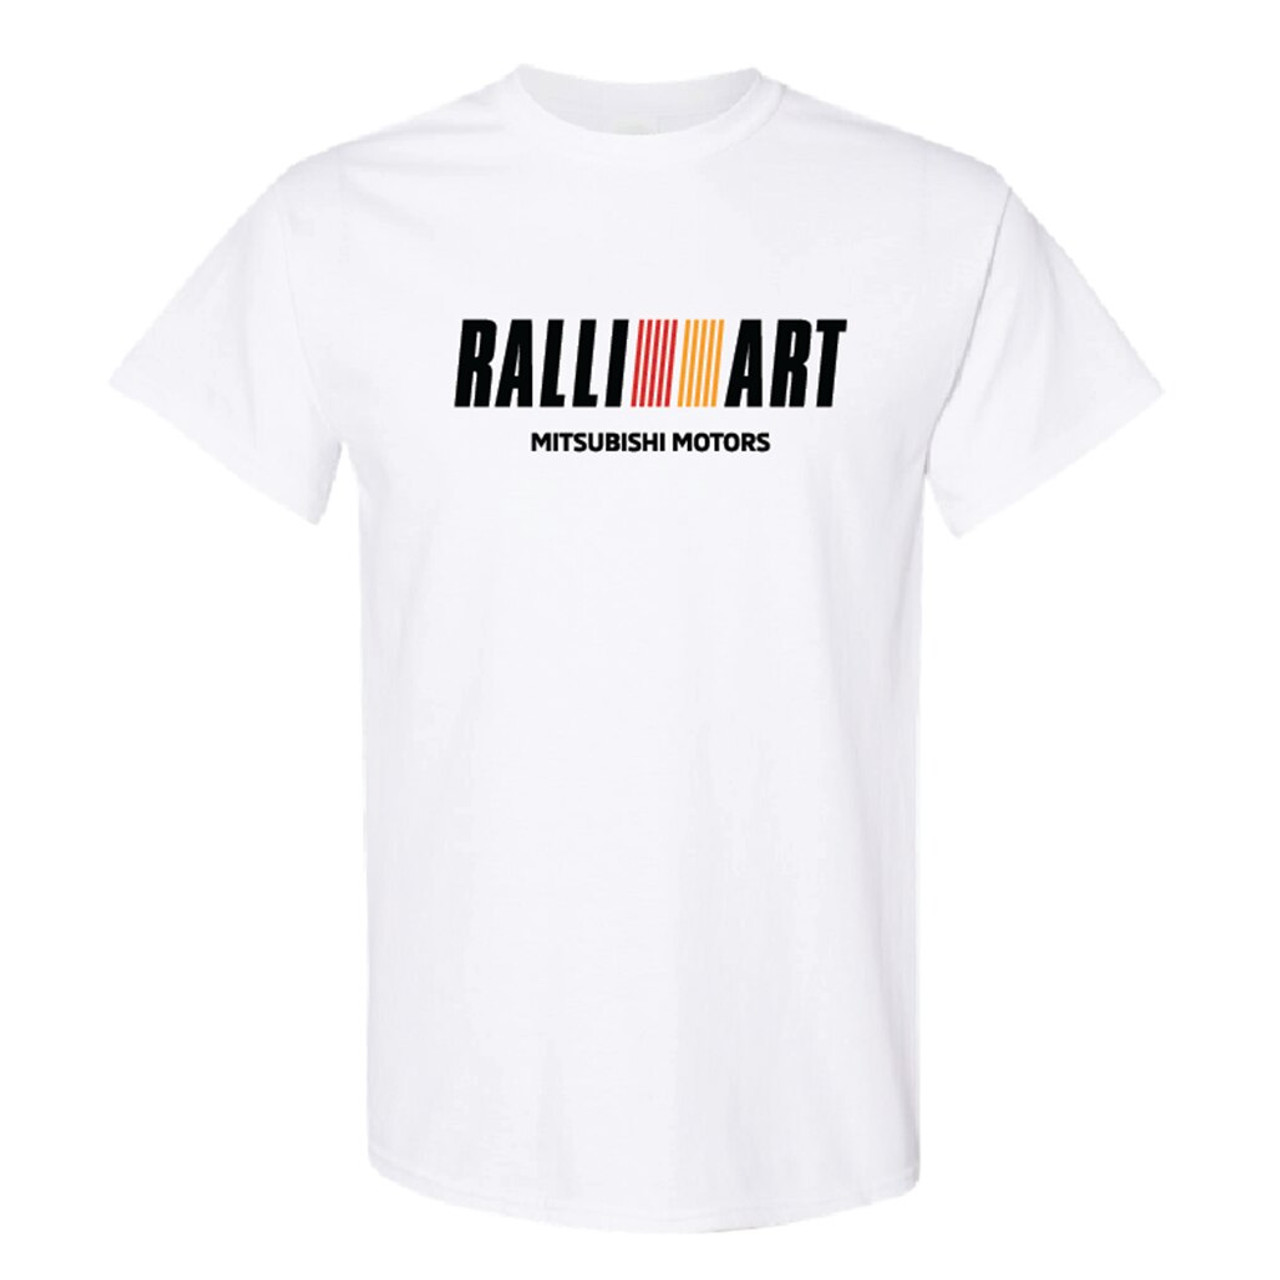 RALLIART T-Shirt